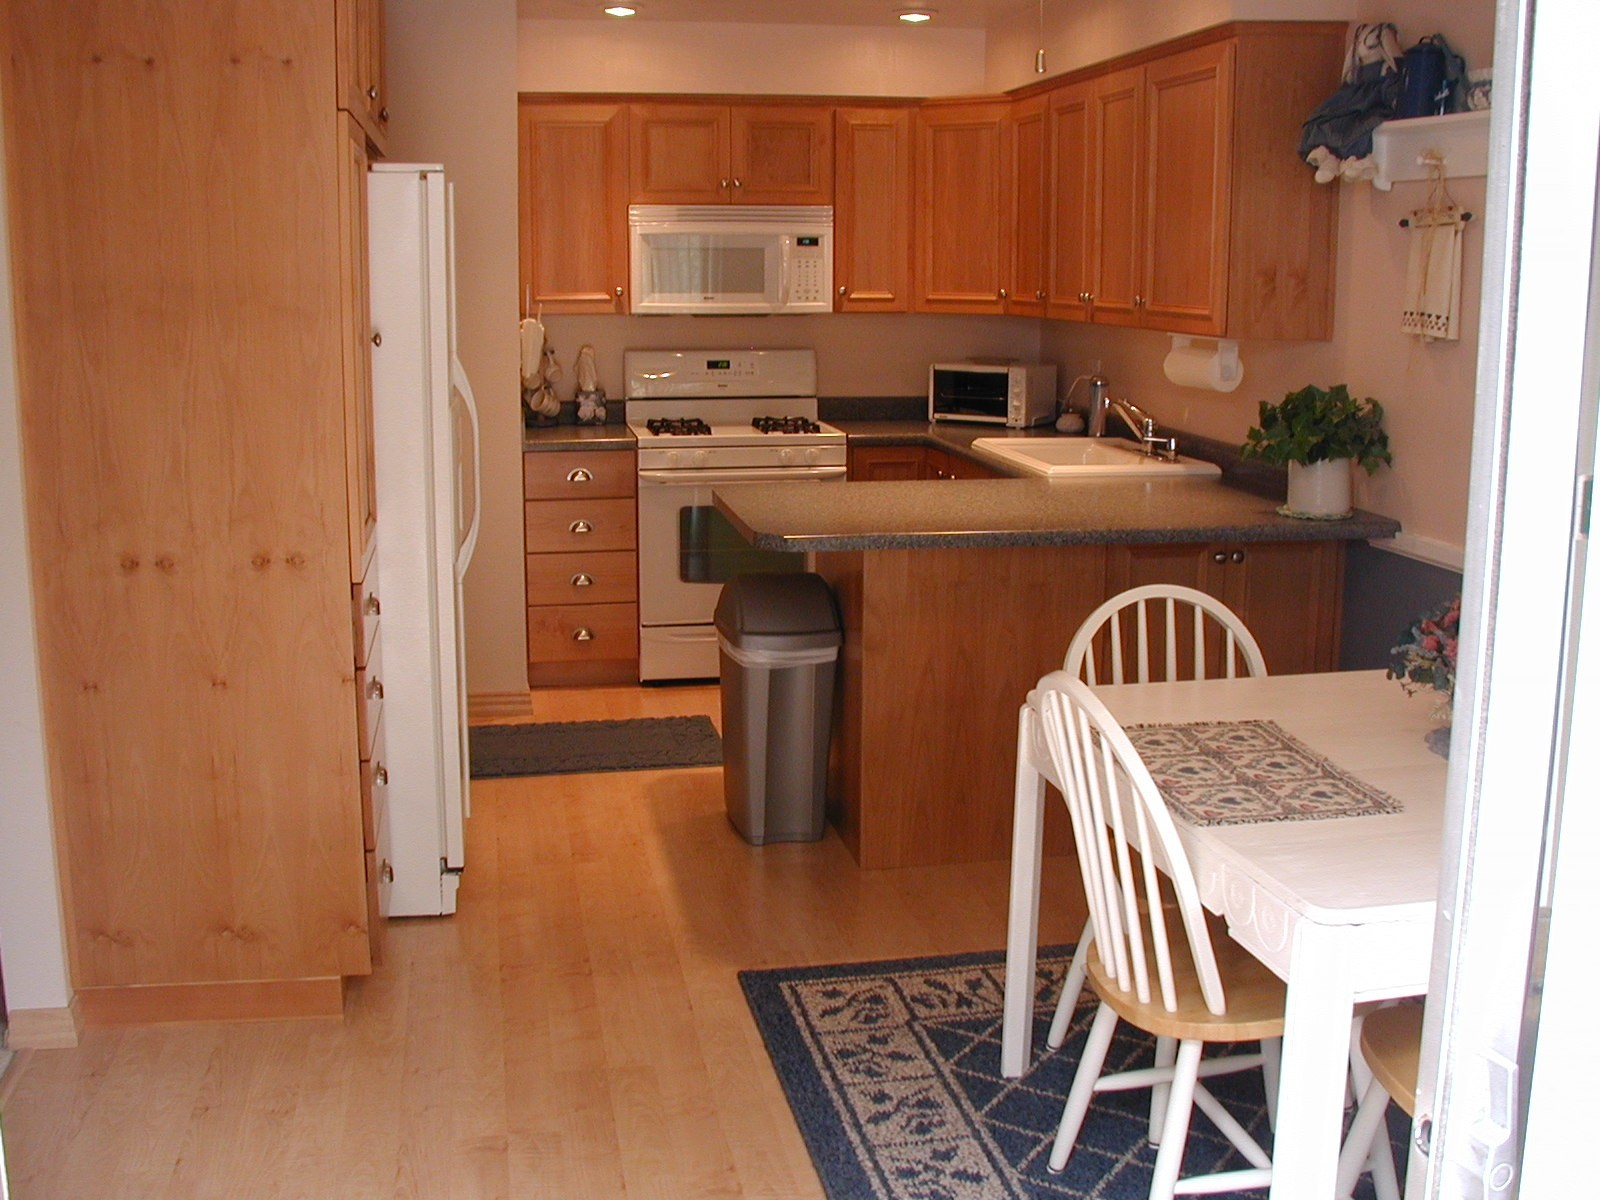 color wood floors 3 kitchen wood floors color of wood floors kitchen 6